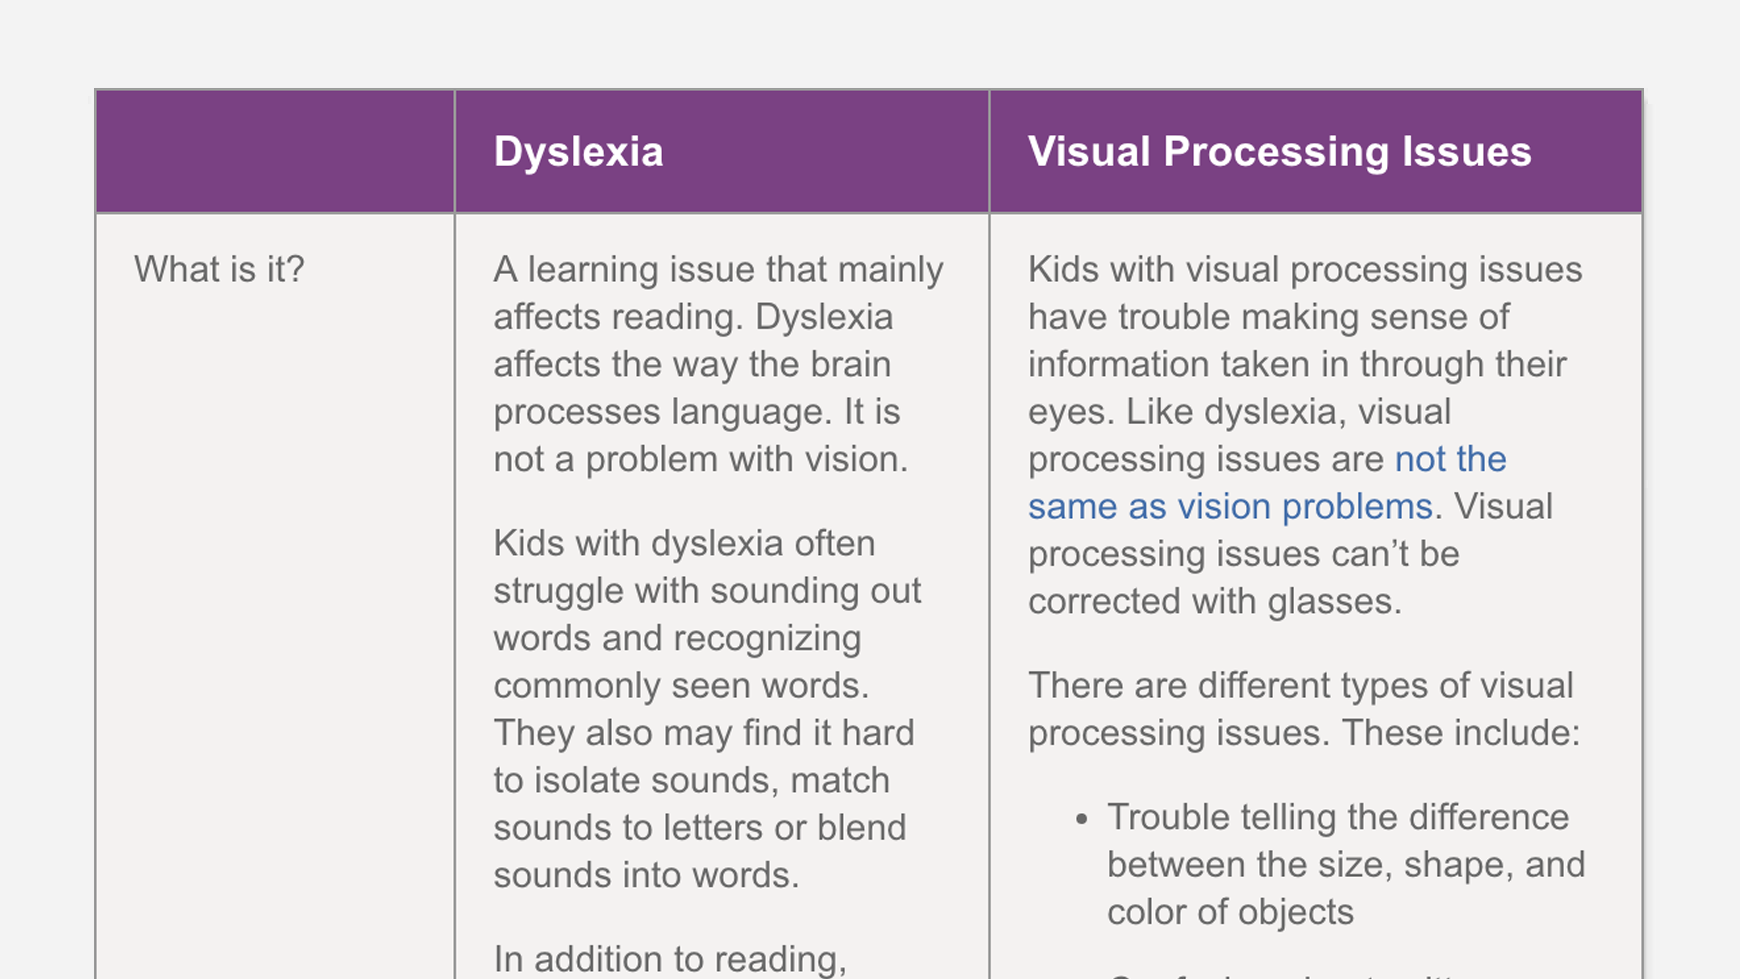 Faqs About Vision And Dyslexia